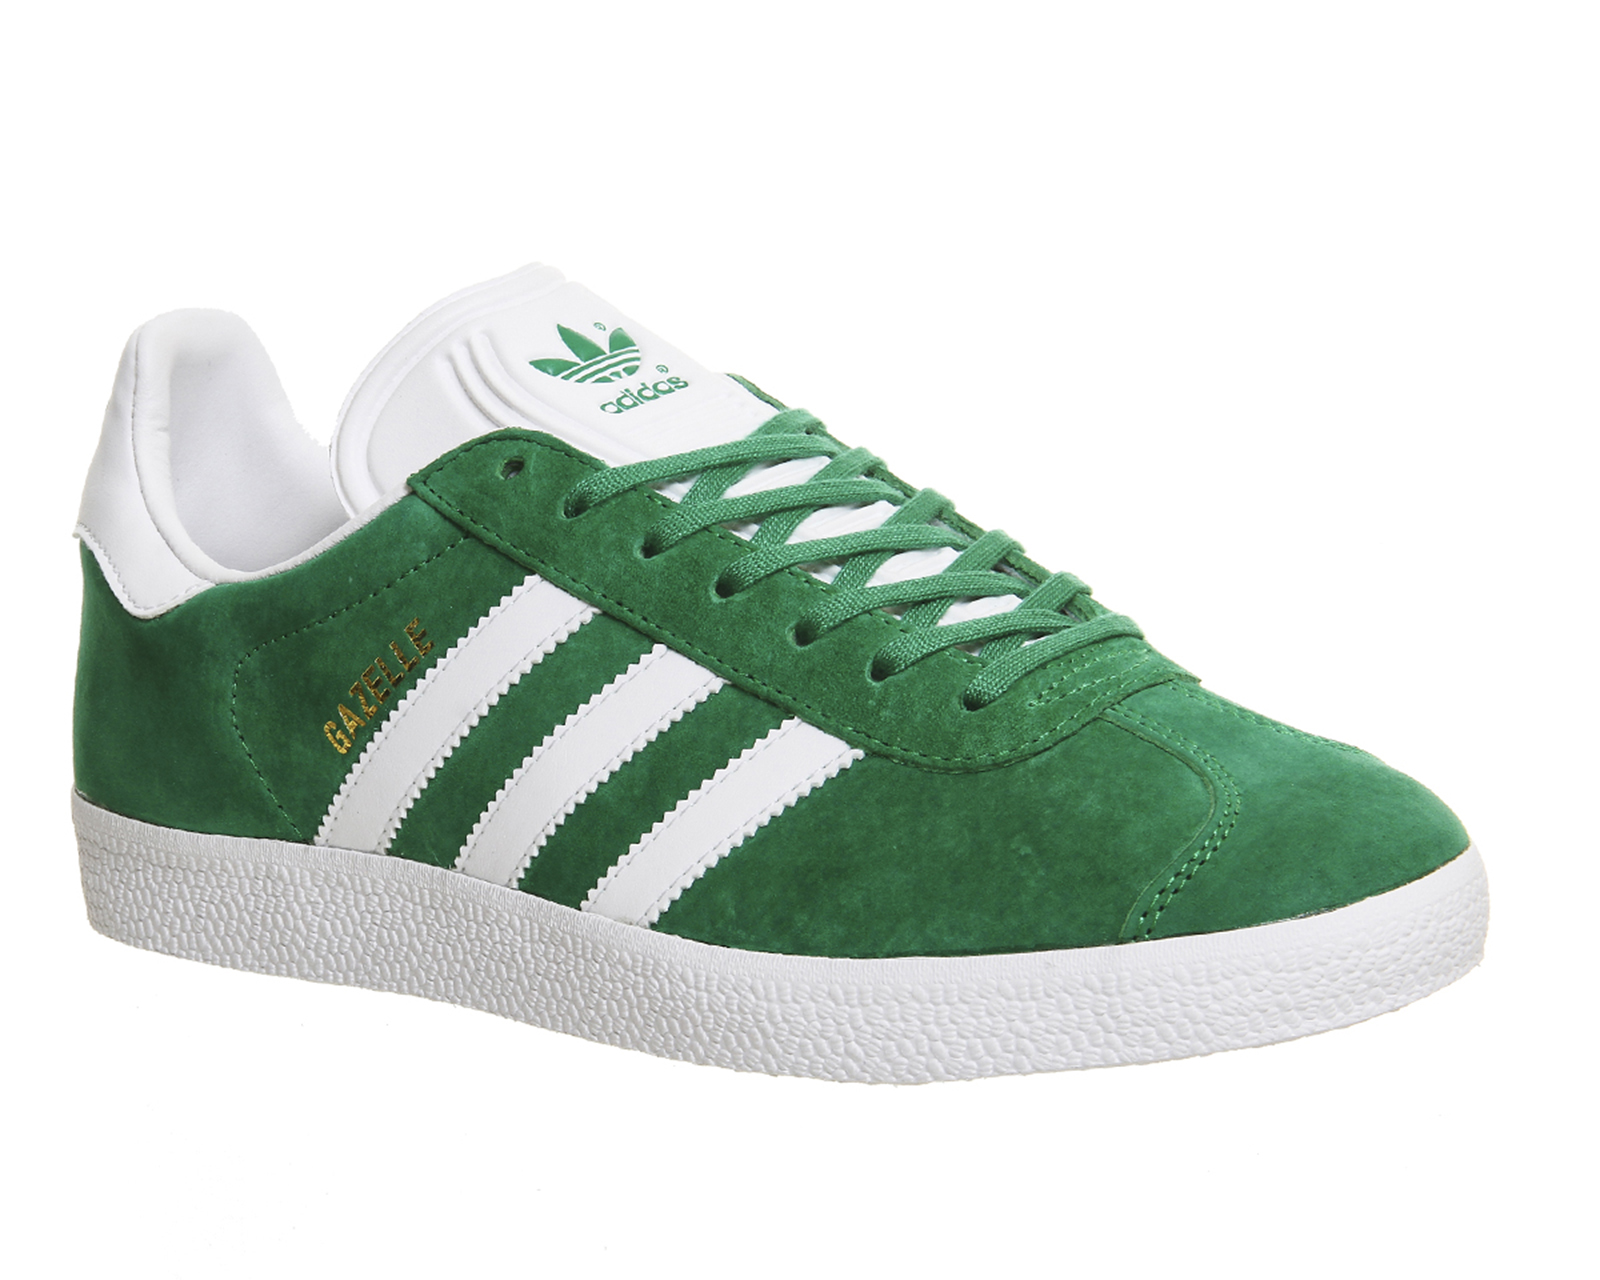 Adidas-Gazelle-GREEN-WHITE-Trainers-Shoes